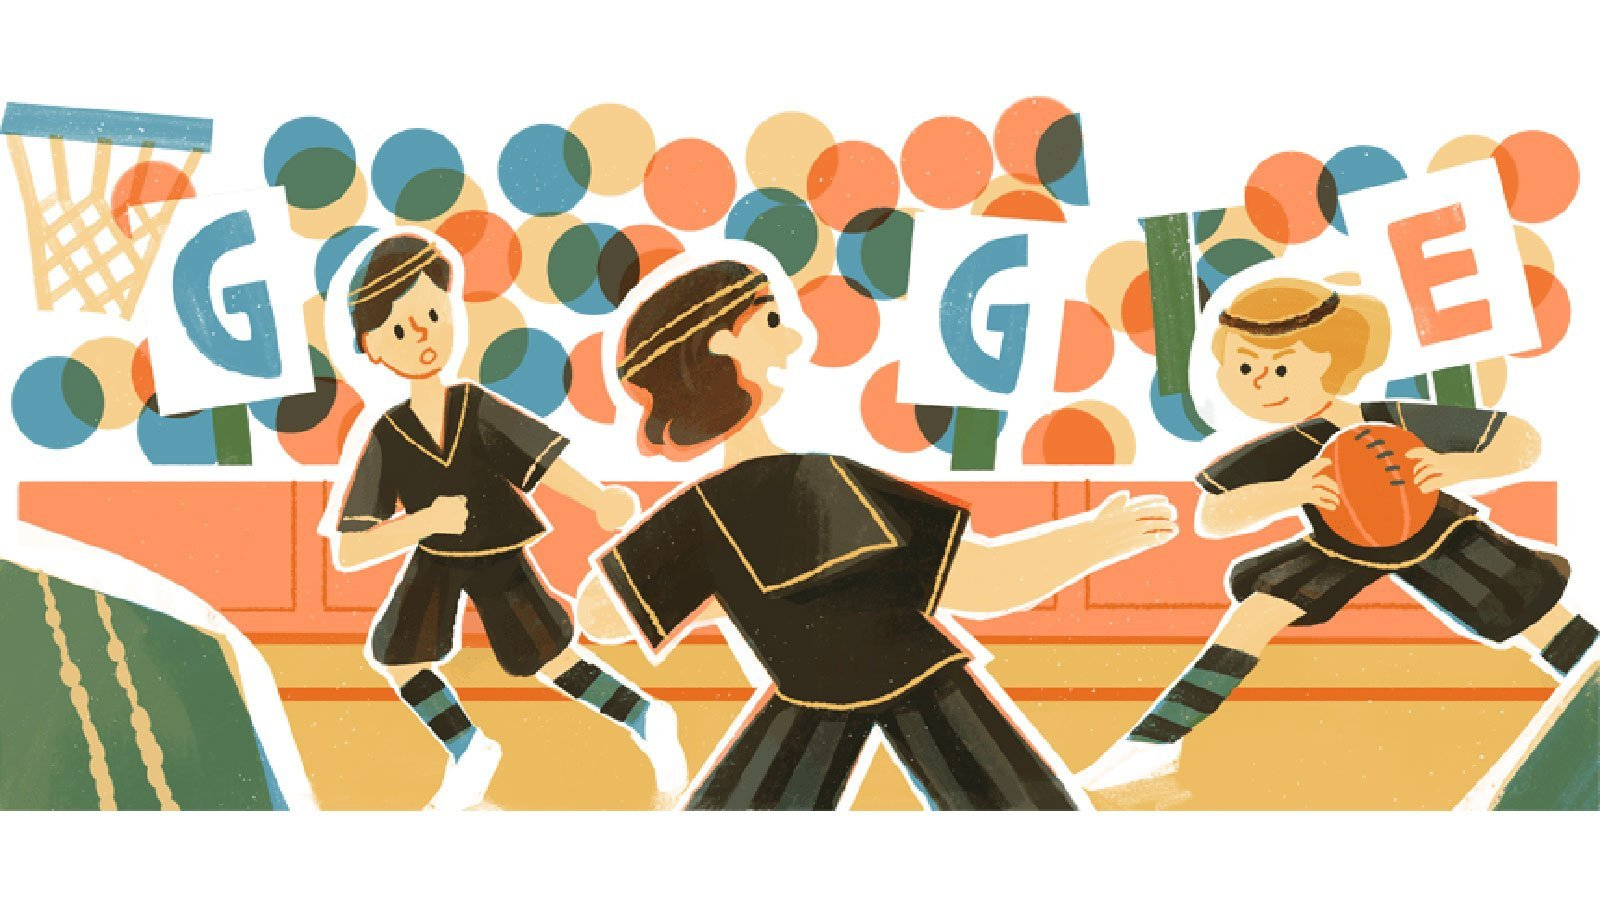 Google Doodle celebrates basketball's legendary Edmonton Grads